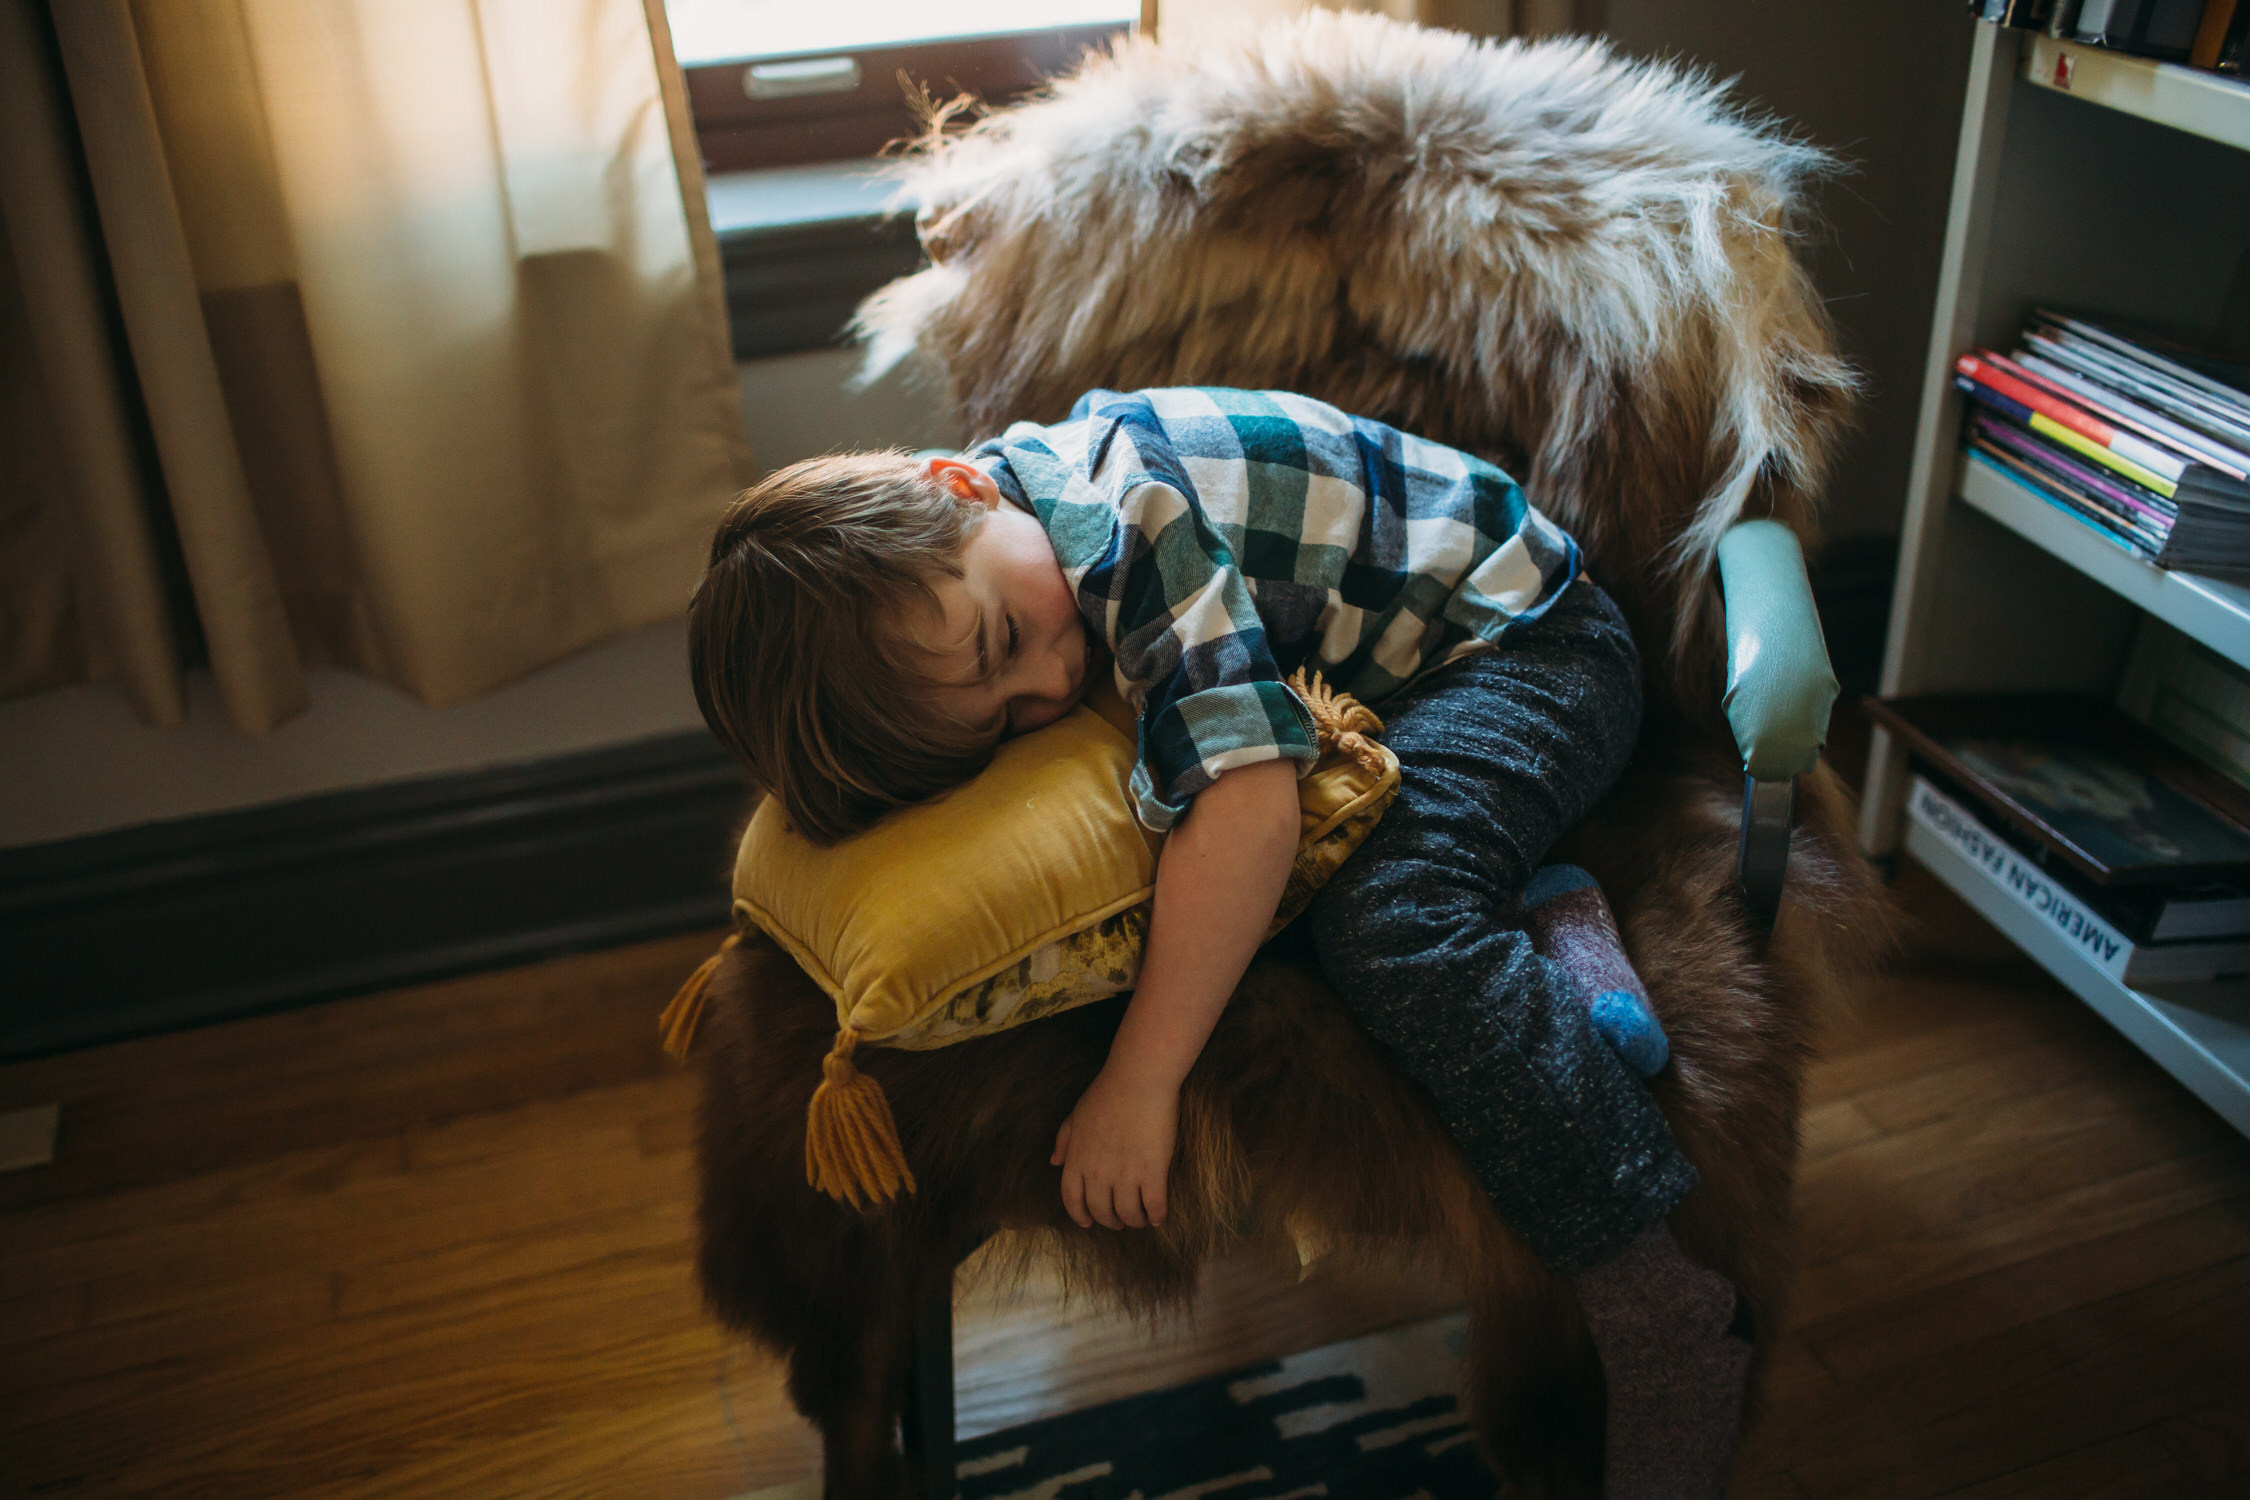 kids at home, st louis lifestyle photographer, real life photos,